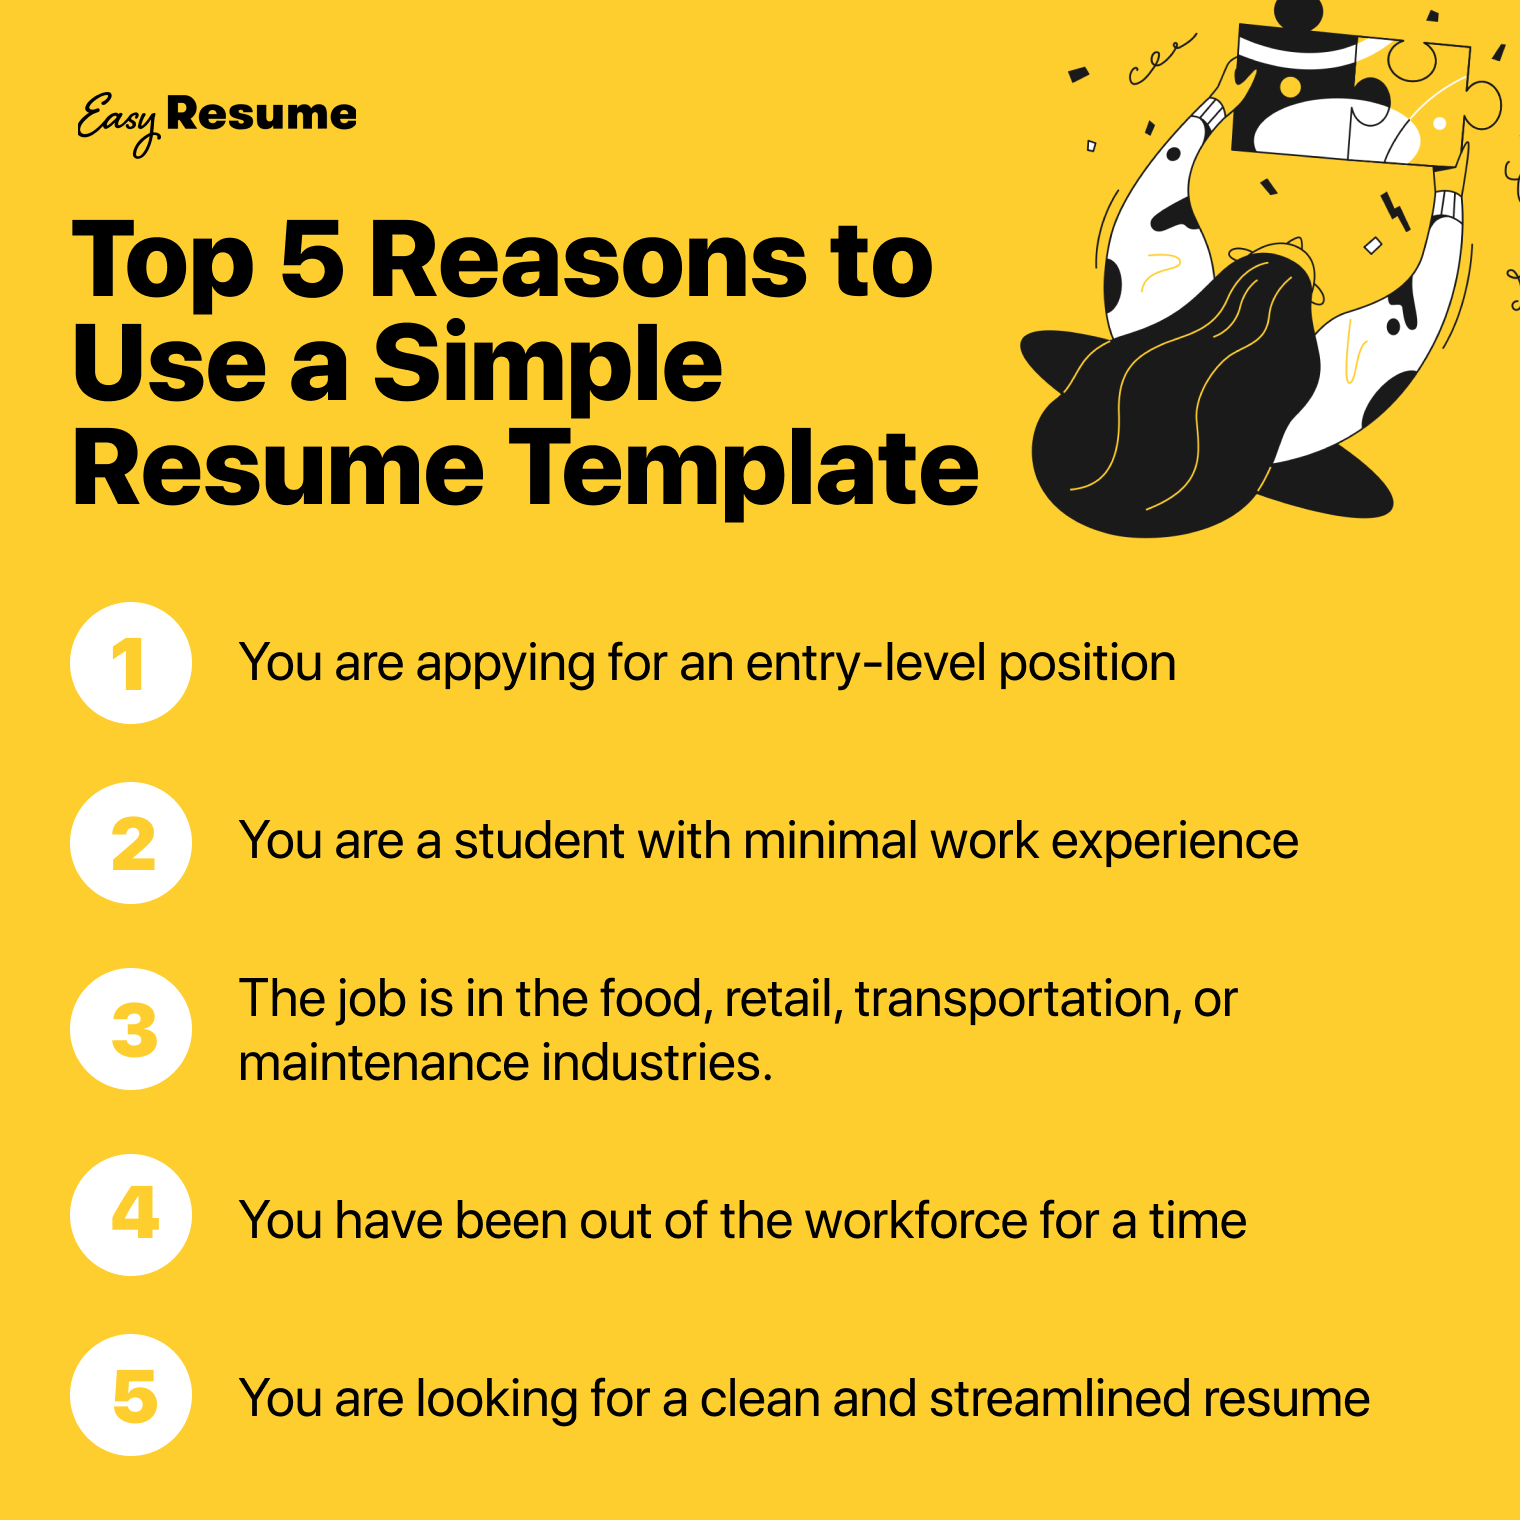 Top 5 Reasons to Use a Simple Resume Template